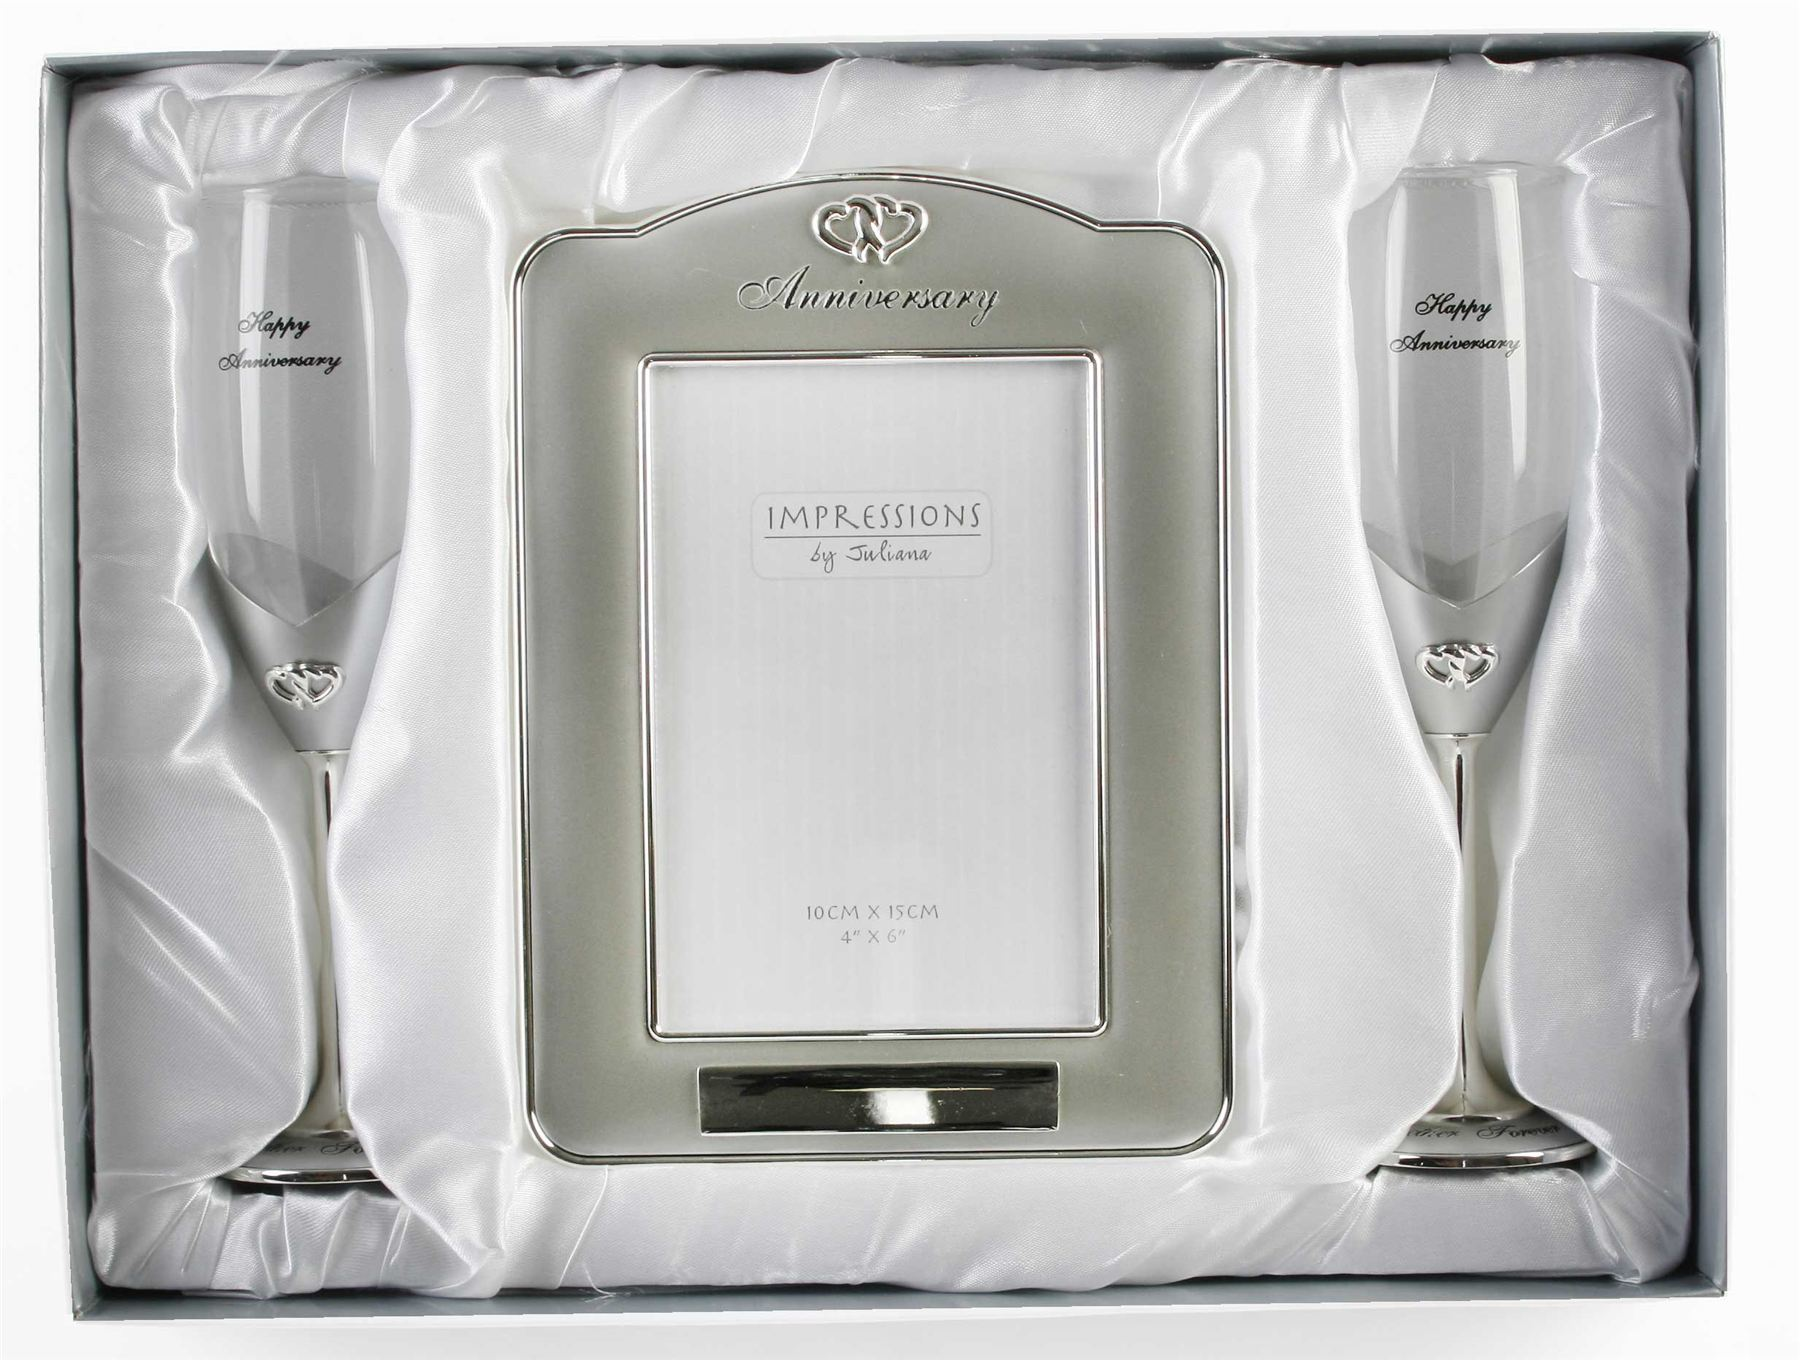 Champagne Glasses Photo Frame : Silver Plated Champagne Flutes and Photo Frame Set by ...